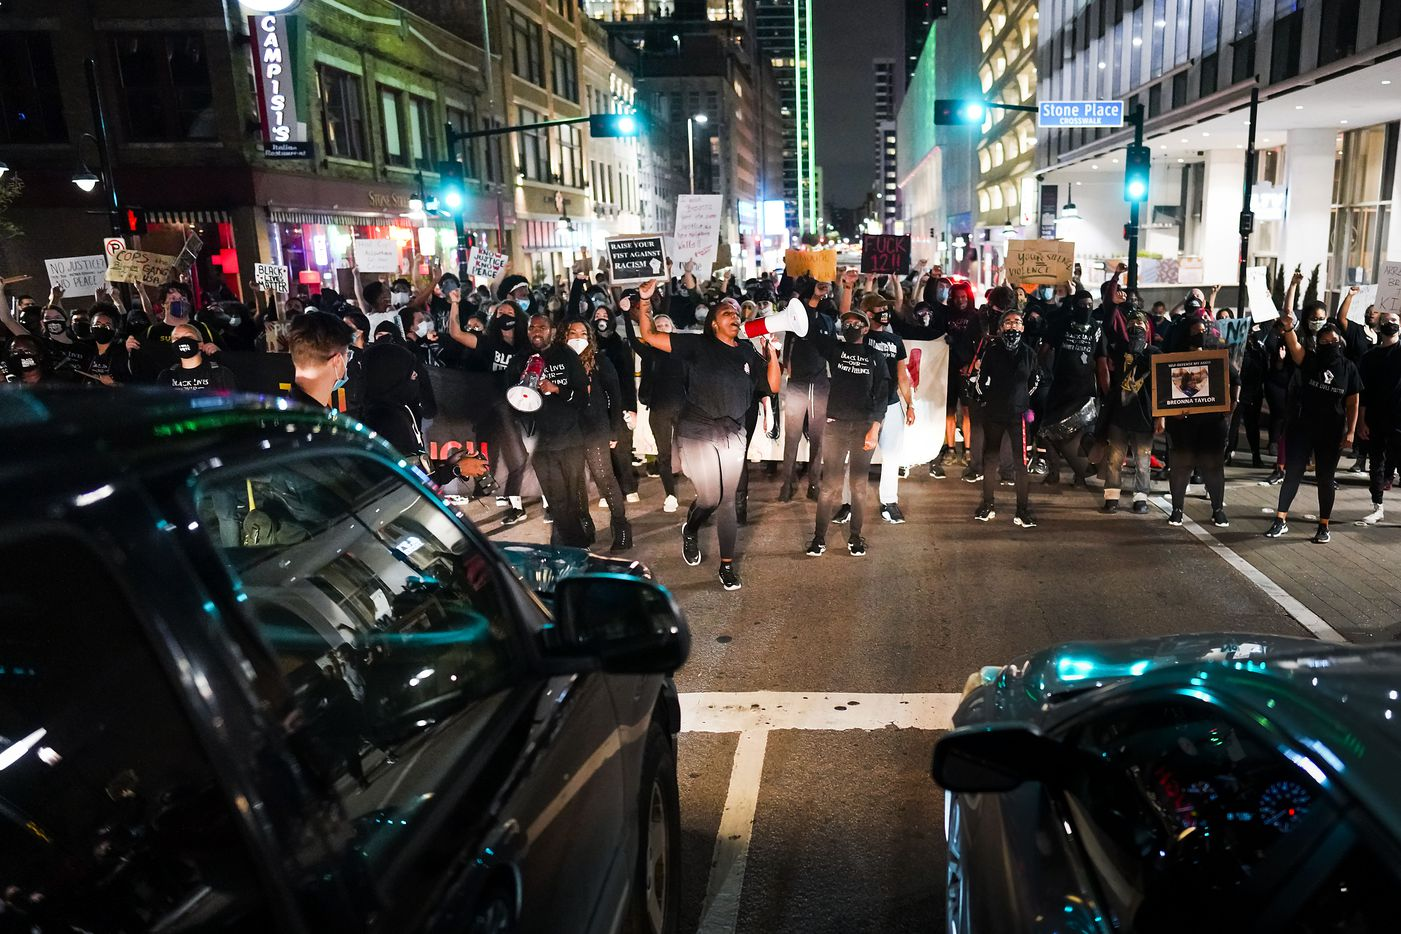 Demonstrators block traffic as they march on Elm Street in downtown Dallas after a Kentucky grand jury brought no charges against Louisville police for the killing of Breonna Taylor on Wednesday, Sept. 23, 2020.